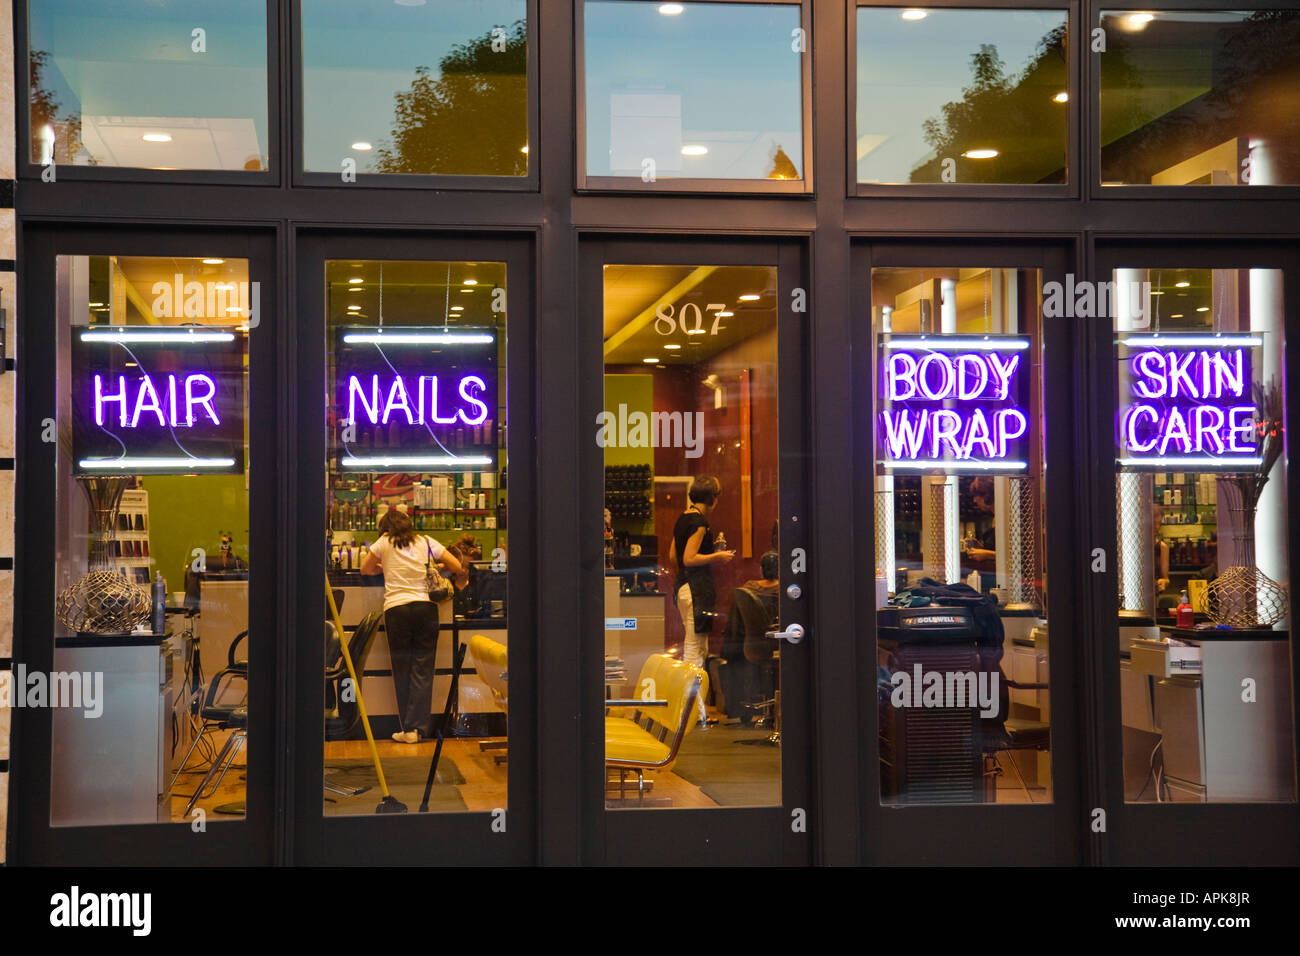 ILLINOIS Chicago Neon Signs For Hair Nails Body Wrap In Window Of Beauty Salon Customers Inside Exterior Building